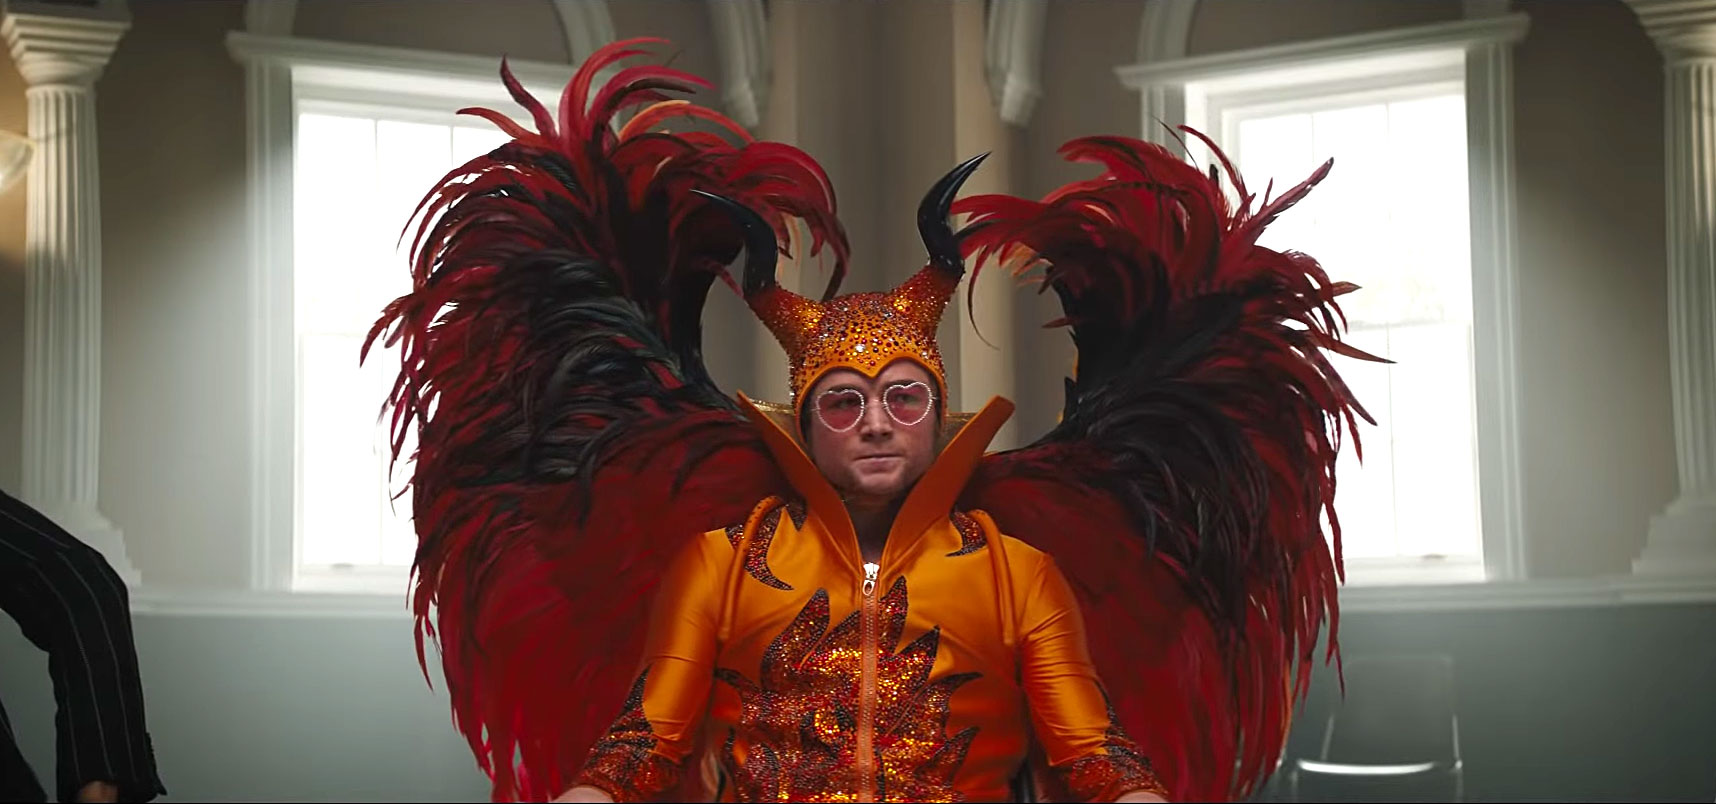 Can't Miss Summer Movie Preview - Taron Egerton takes on the ultimate challenge of playing Elton John before he was Elton John. The film is more of a fantasy musical than a straight biopic, following both the singer's career and personal life, and chronicling his struggles with substance abuse and depression.